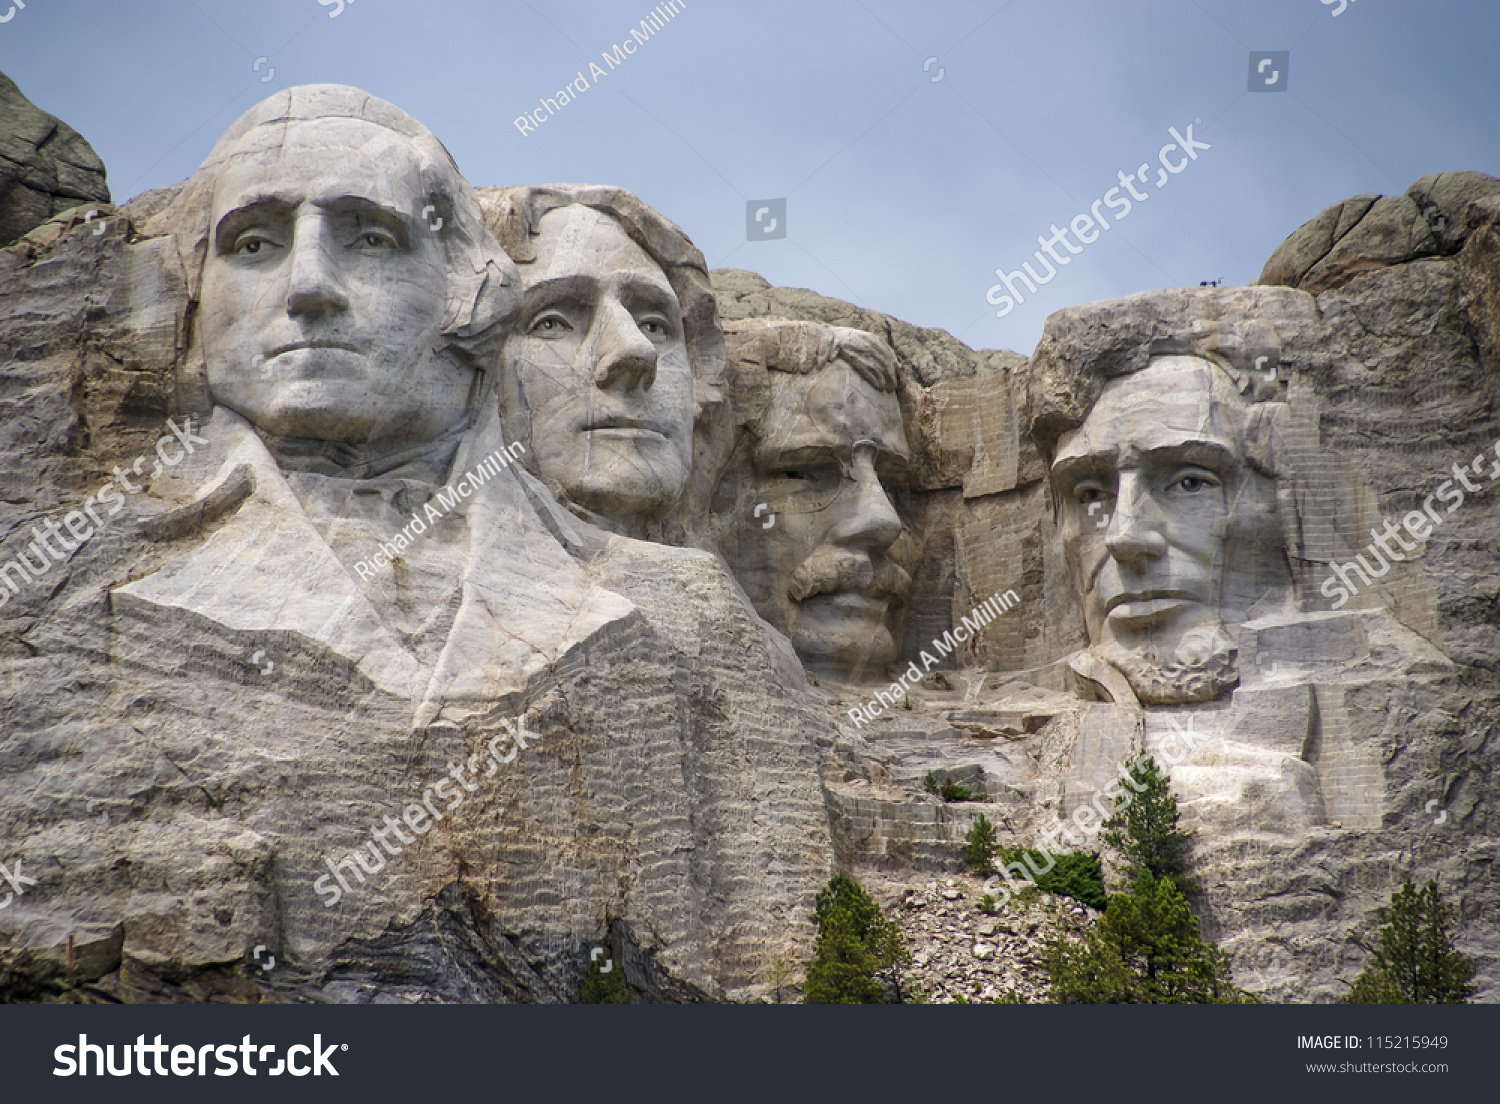 Worksheet Why Is Mount Rushmore Important famous landmark mountain sculpture mount rushmore stock photo and near keystone south dakota shot